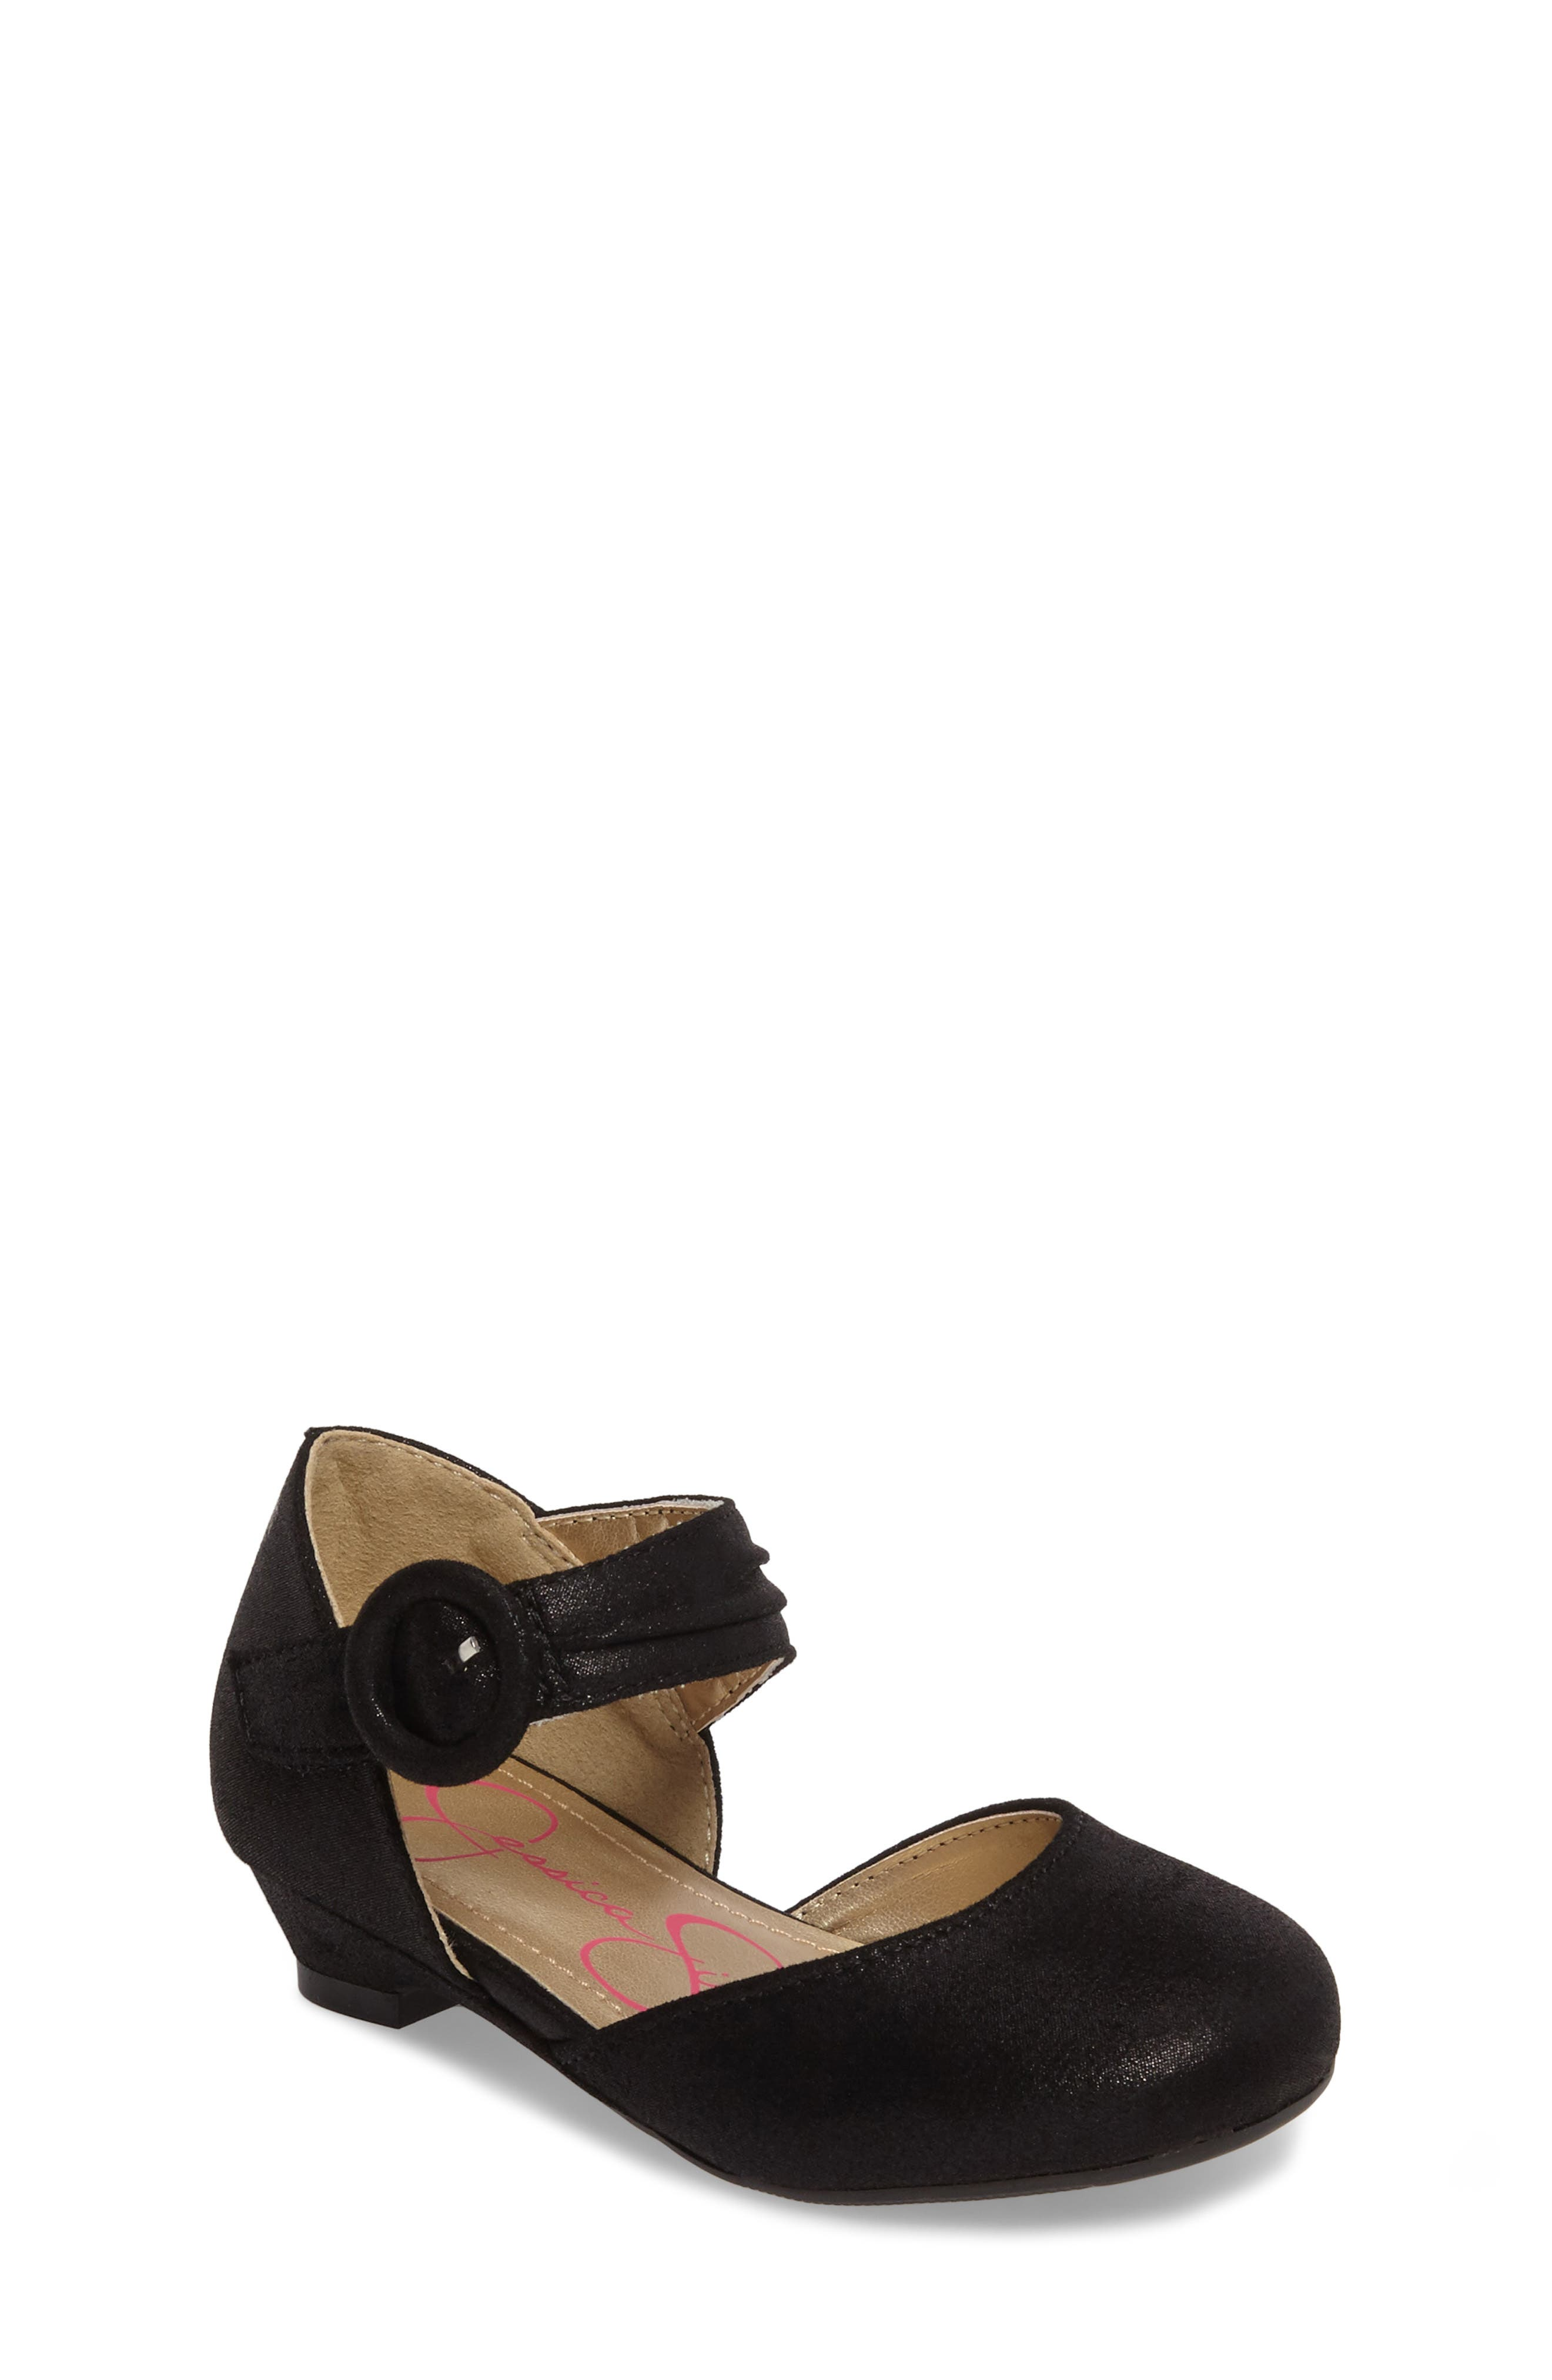 Tiana Shimmery Pump,                             Main thumbnail 1, color,                             Black Suede